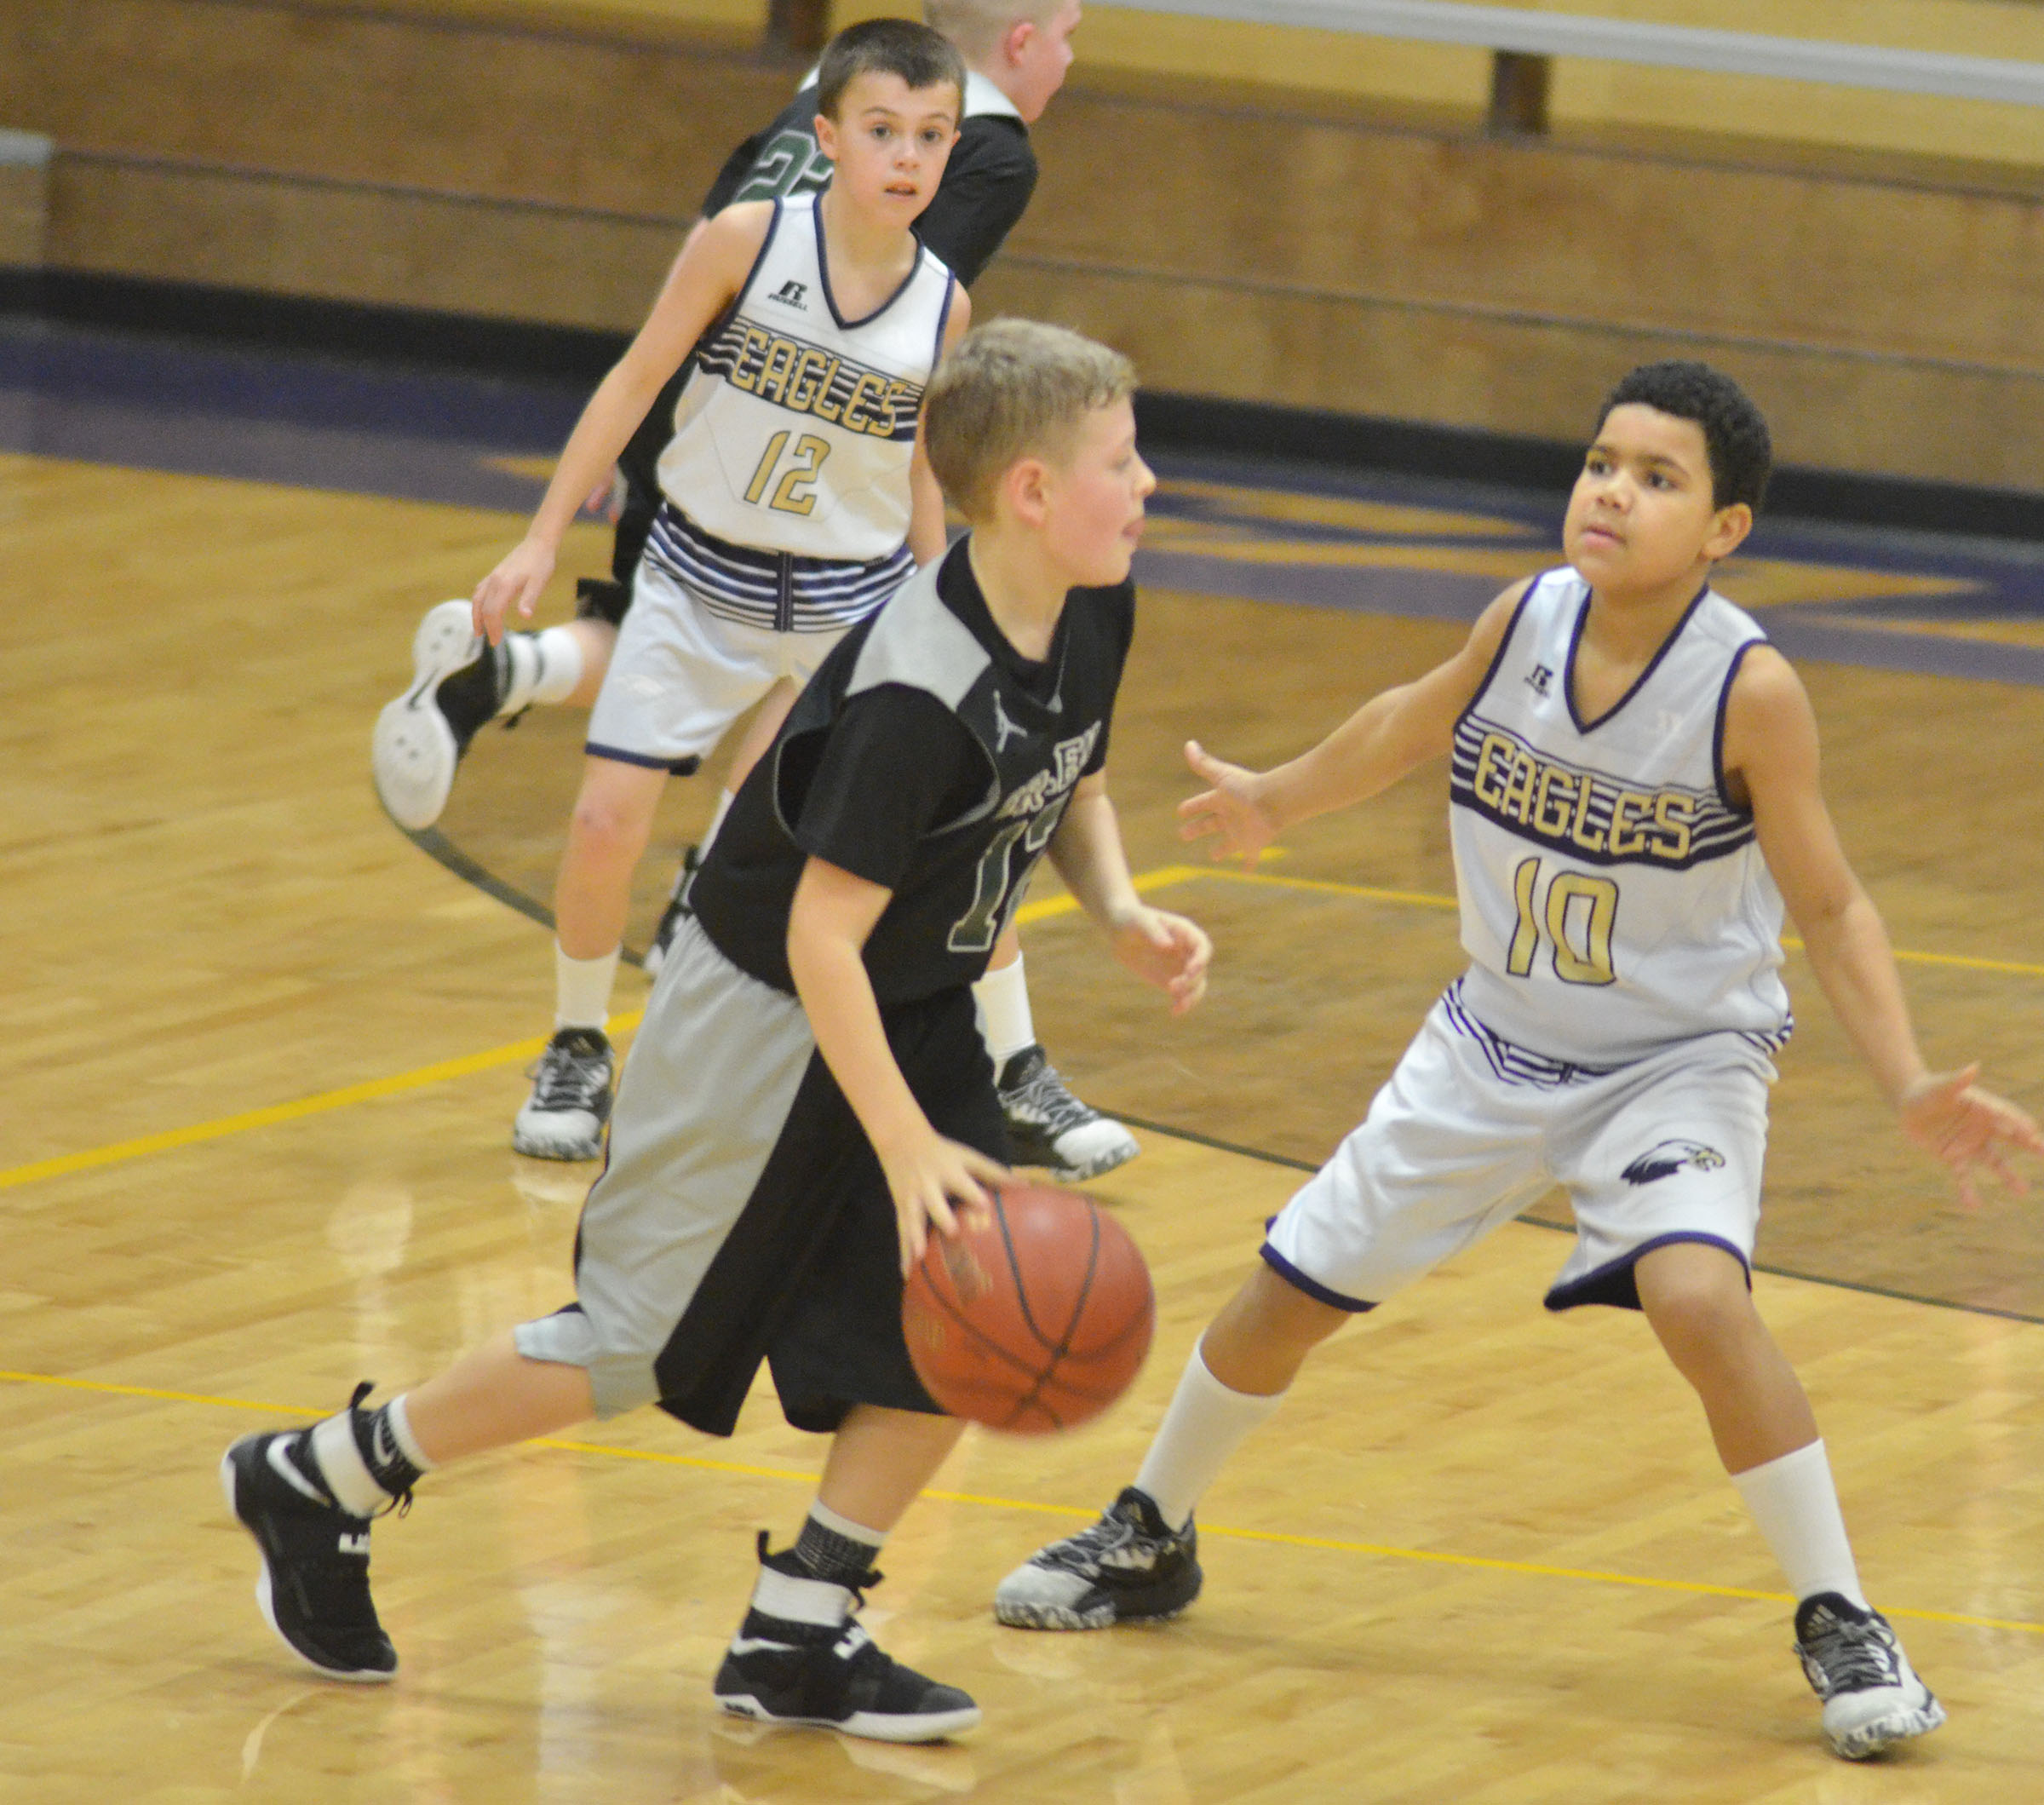 CMS sixth-grader Tashaun Hart plays defense.